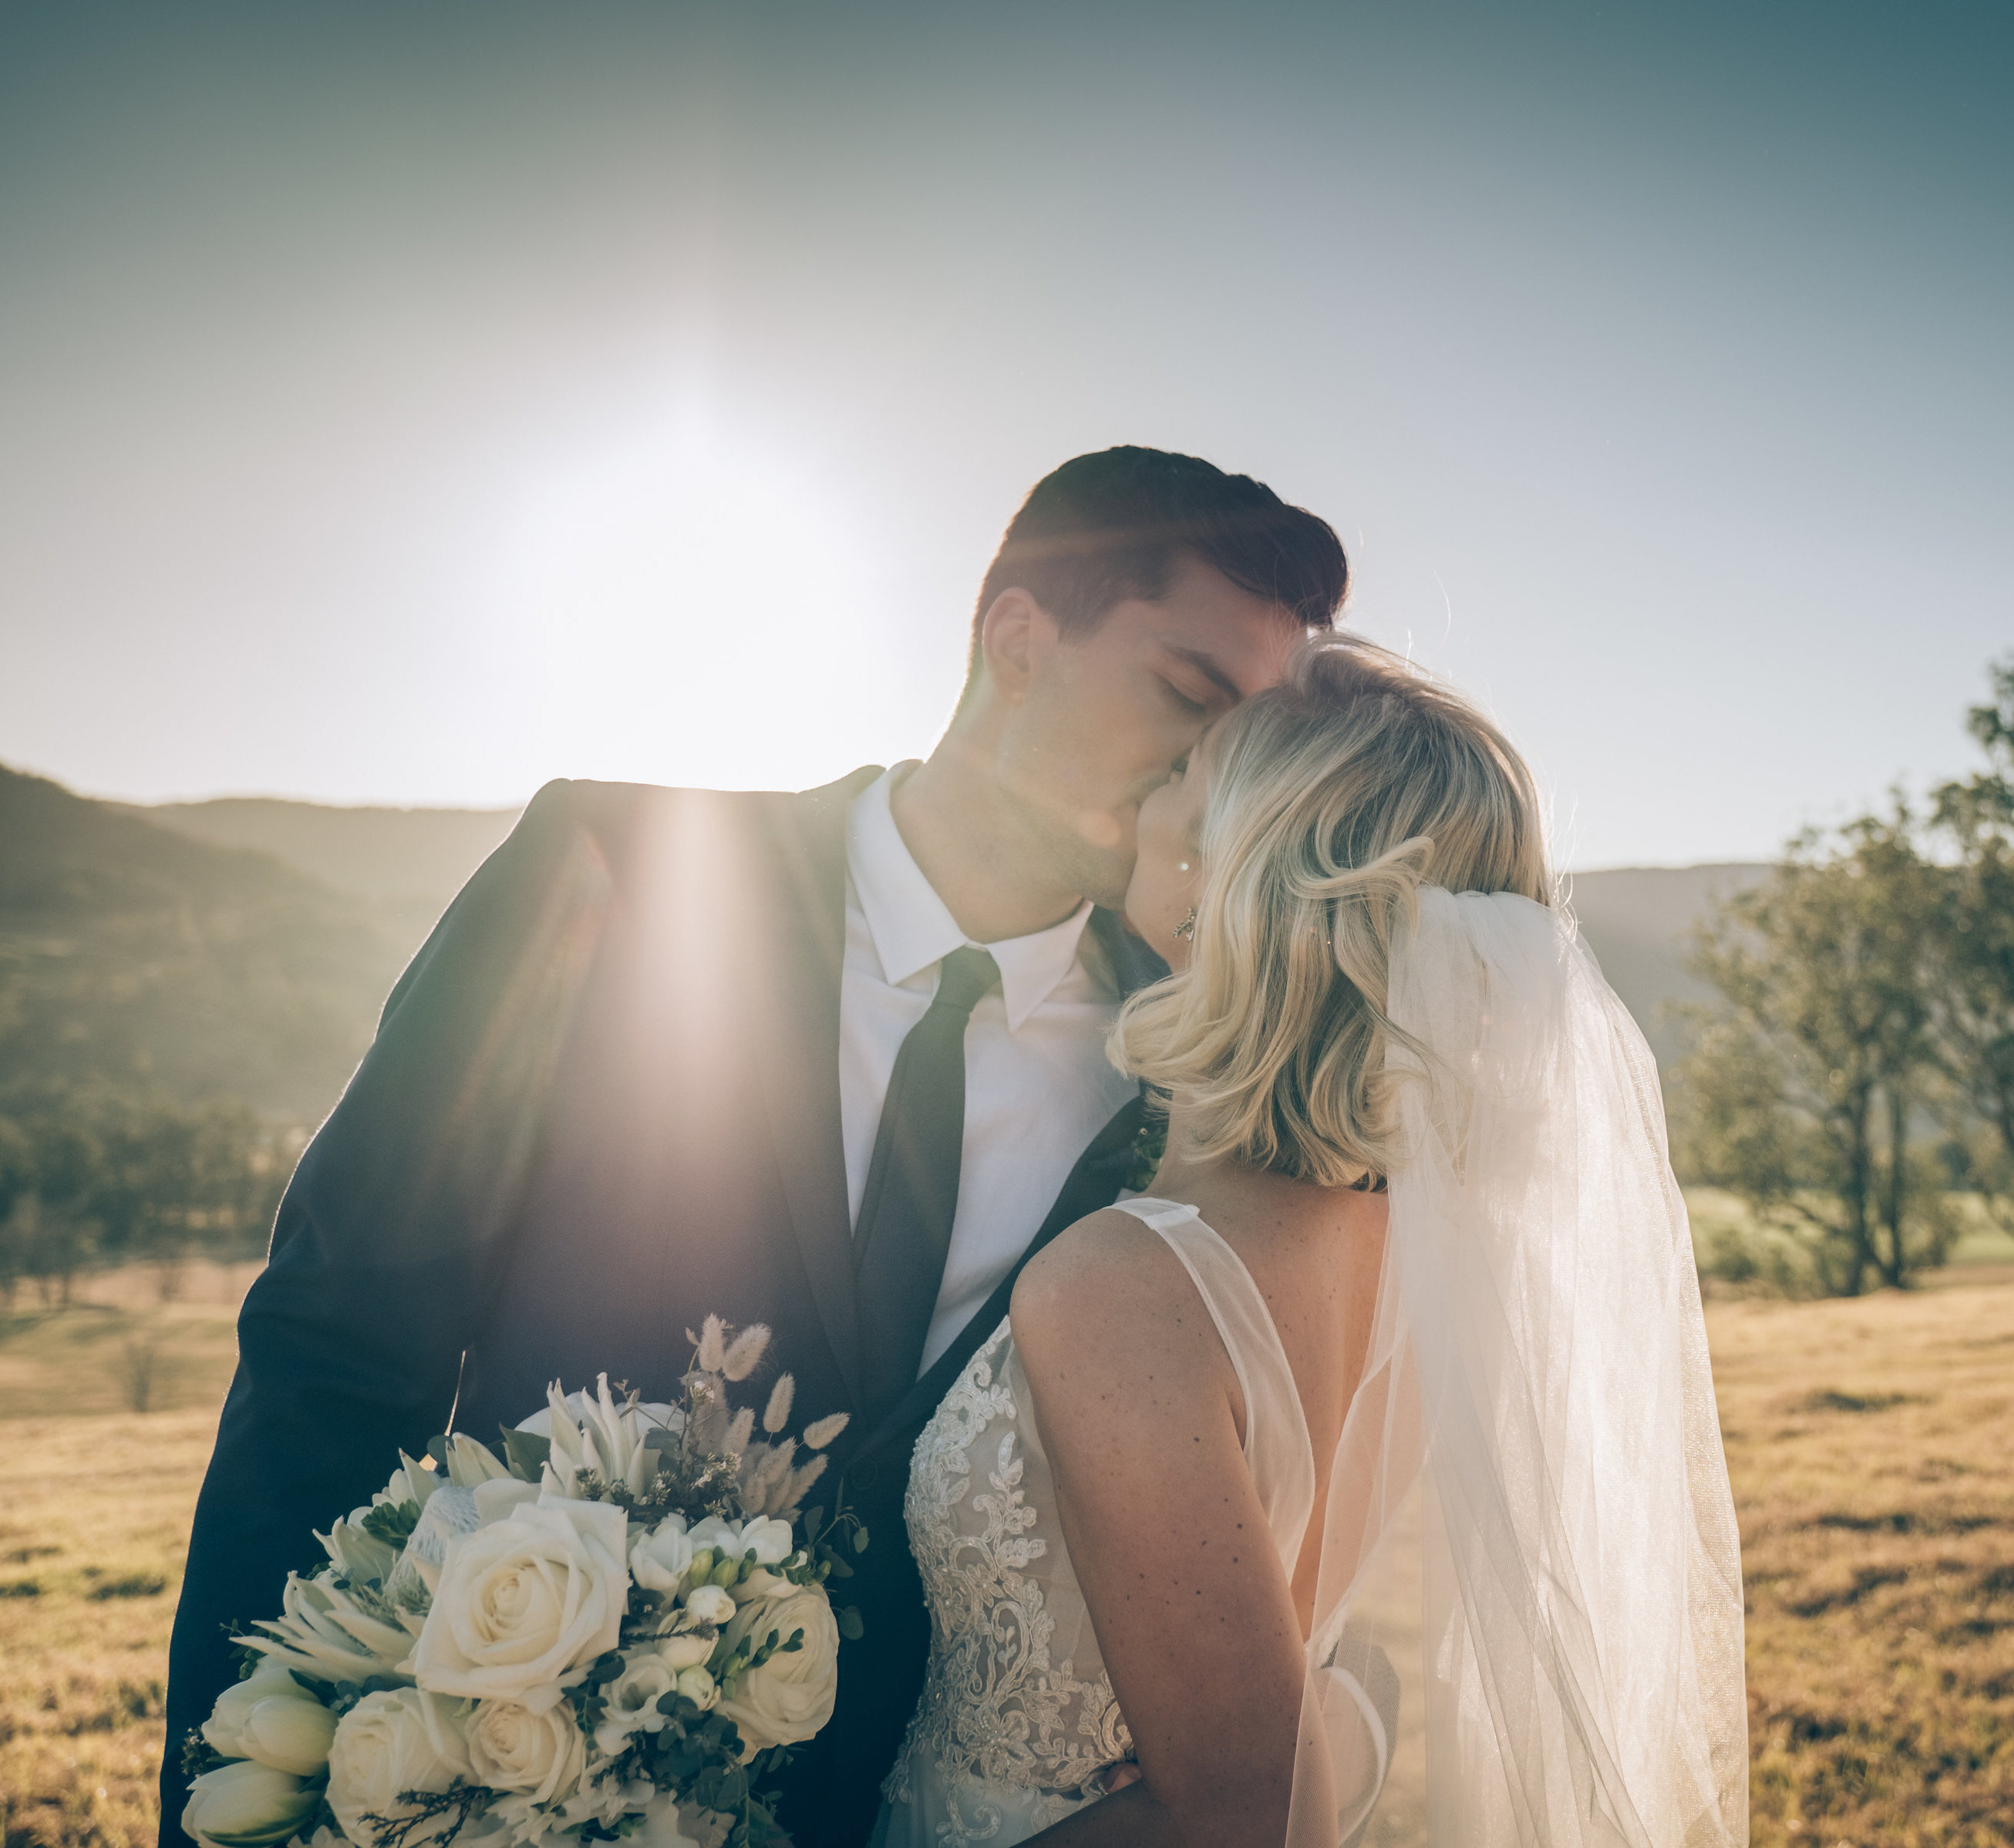 love, hope, flowers, lhflowers, wedding flowers, flowers, Sydney, Sydney florist, native flowers, wedding bouquet, brides, bouquet, kangaroo, valley, melross, farm, table, centre, pieces, farm, wedding, rustic, wedding